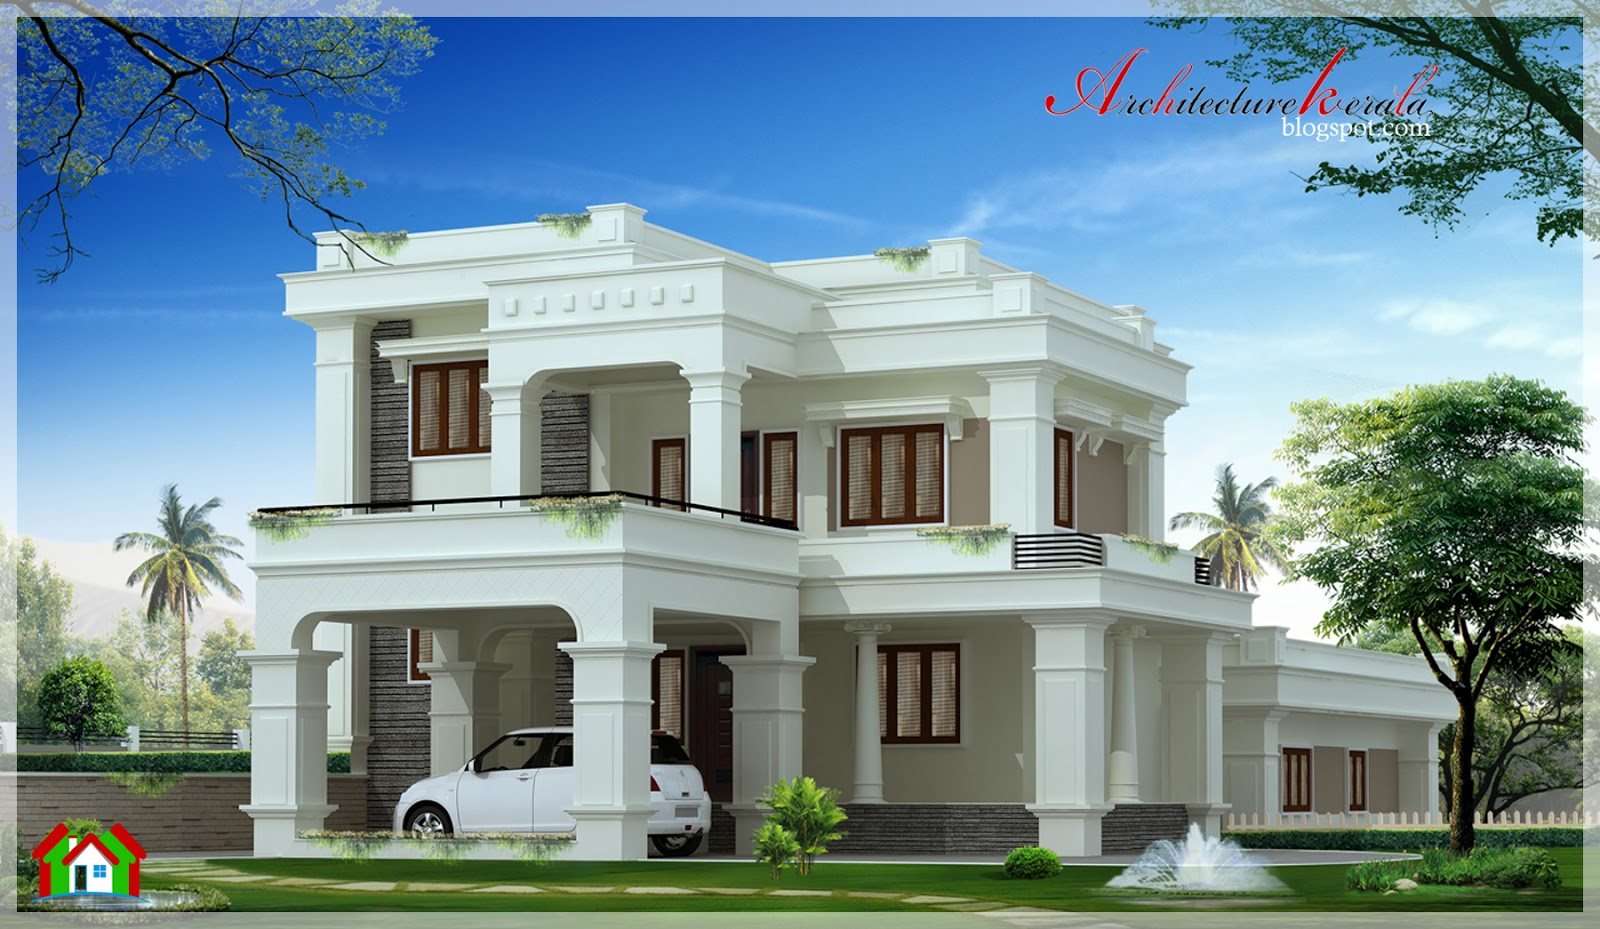 Four Bedroom House Floor Plans Architecture Kerala 2900 Square Feet Beautiful Kerala